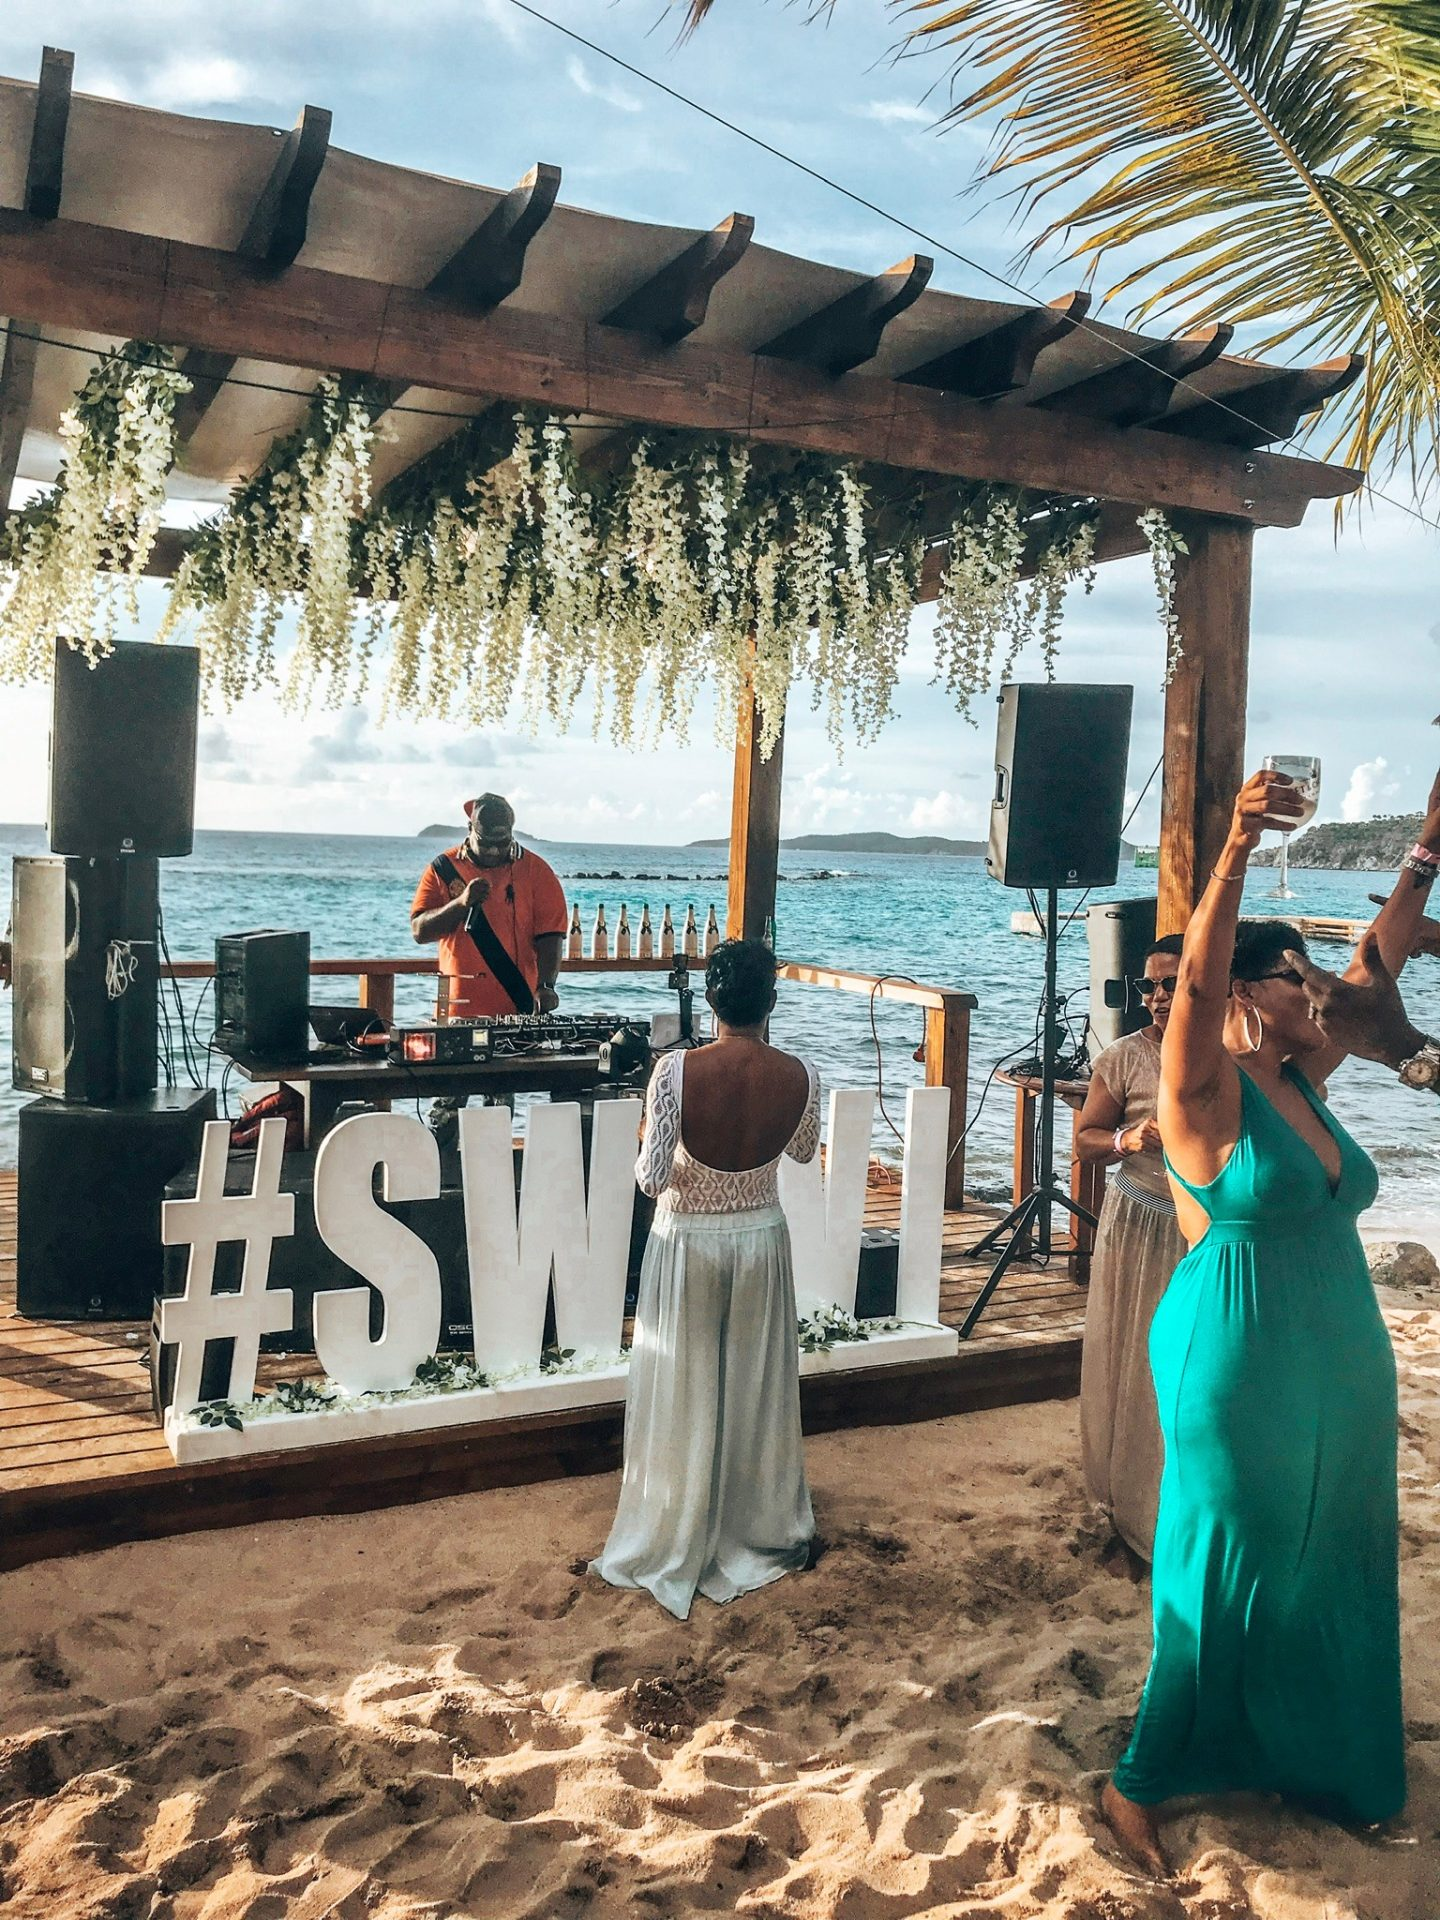 CocoMaya - Virgin Gorda, British Virgin Islands. Hosts some of the hottest events of the year